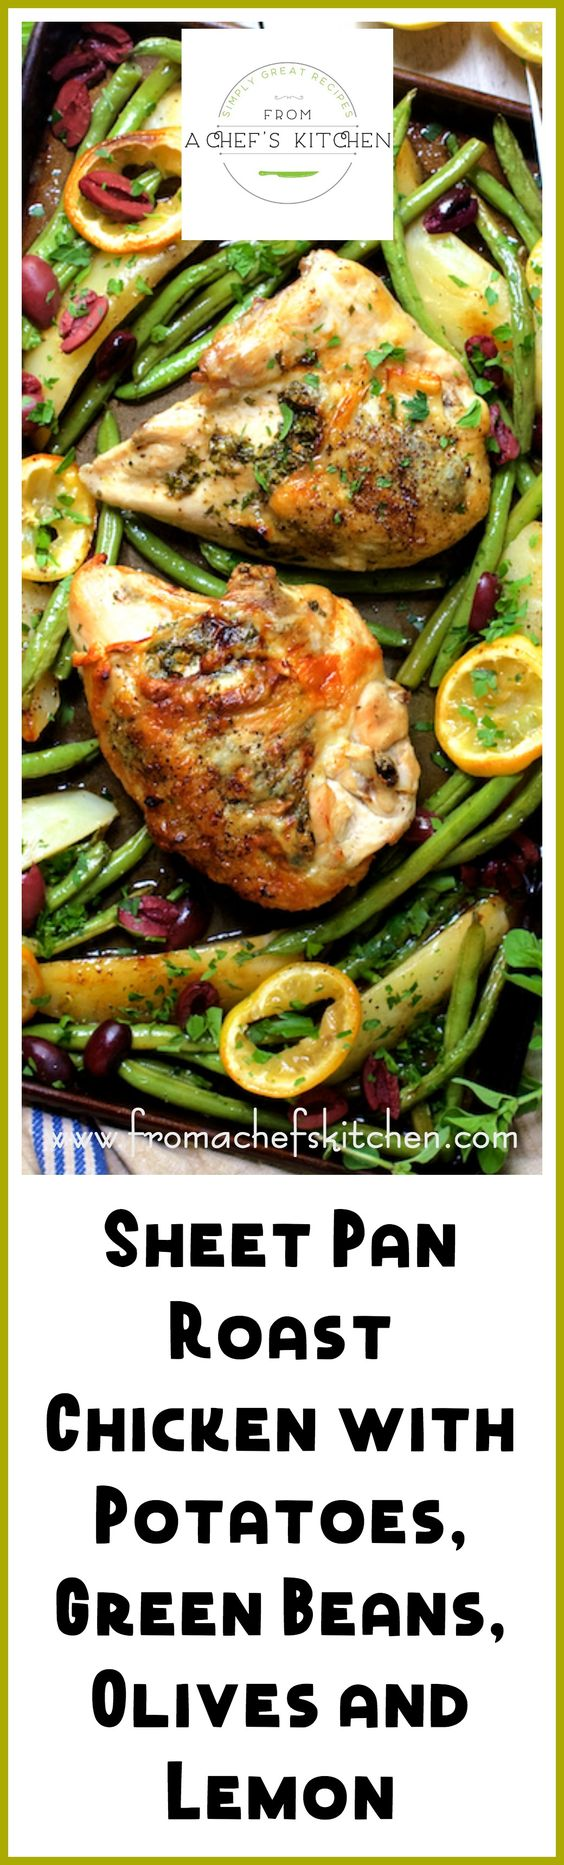 Sheet Pan Roast Chicken with Potatoes, Green Beans, Olives and Lemon ...